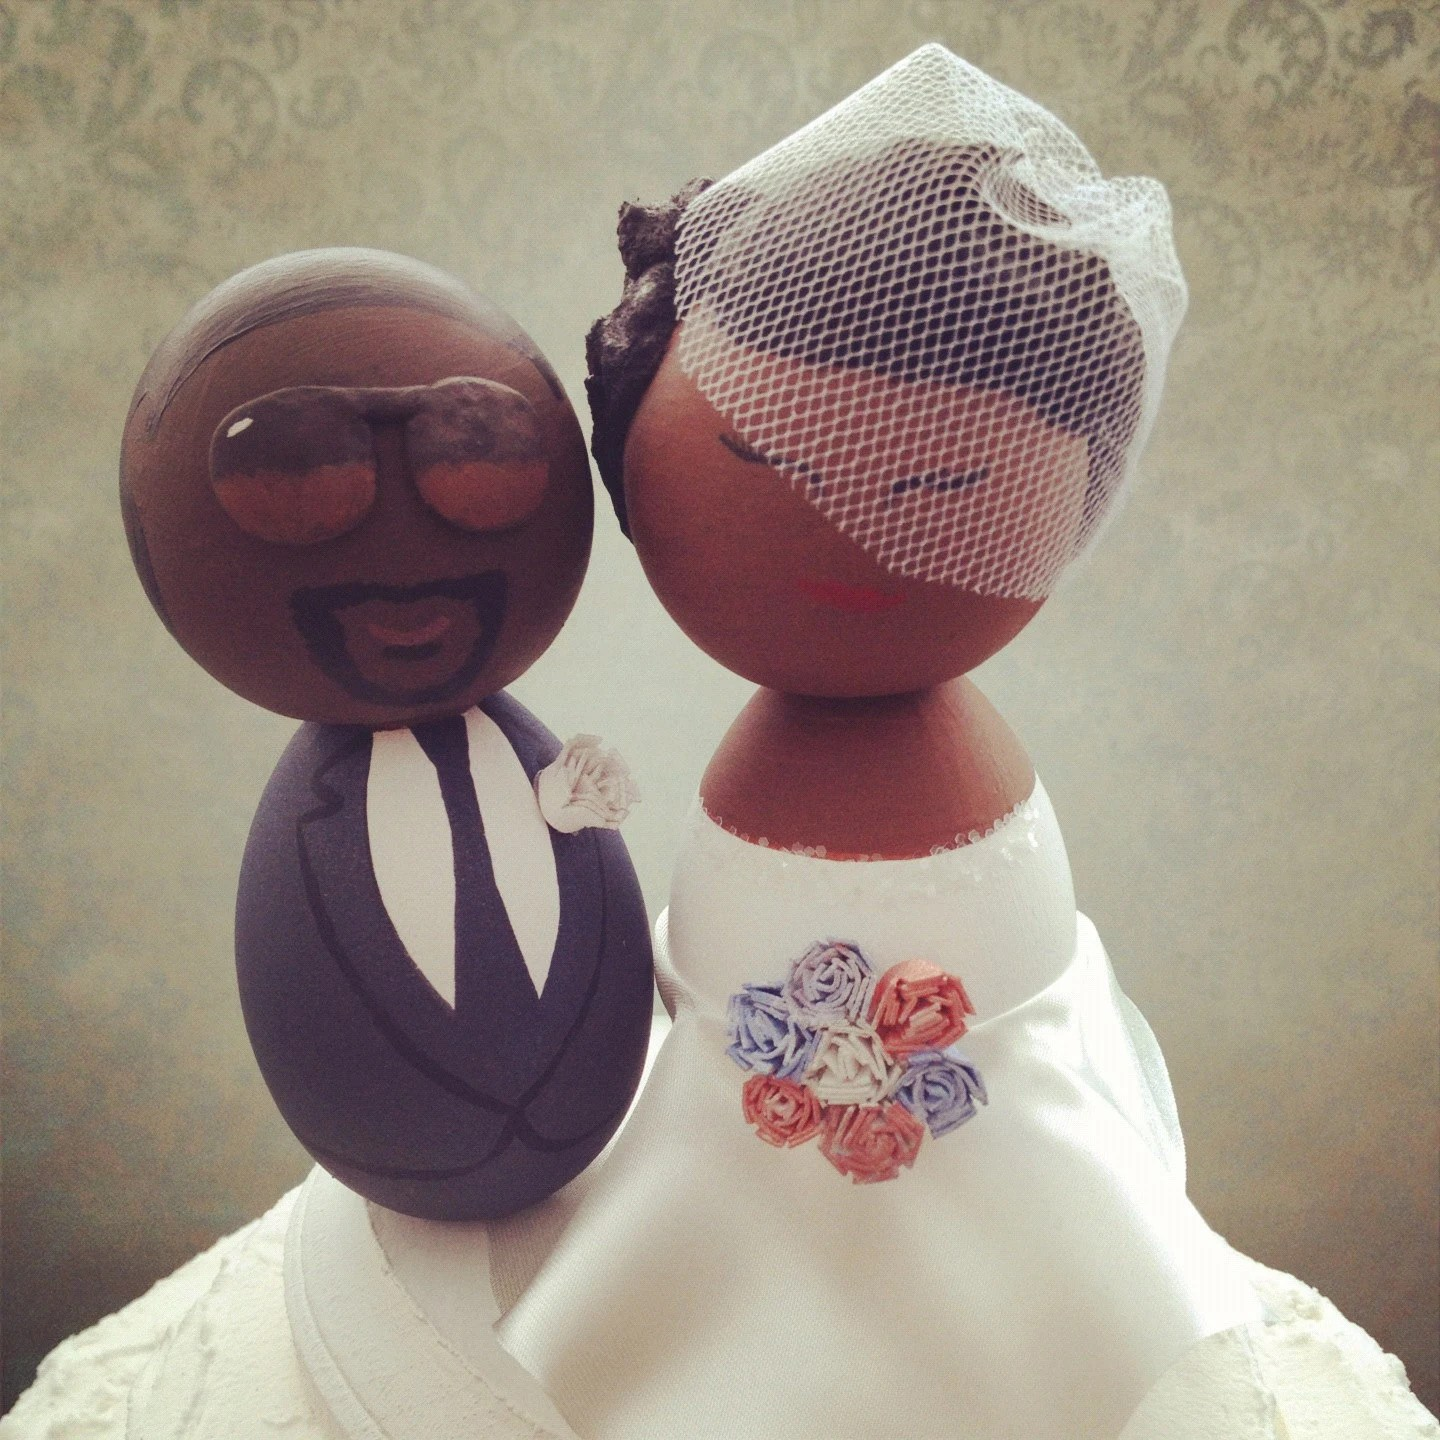 Custom African American Wedding Cake Topper Every topper is